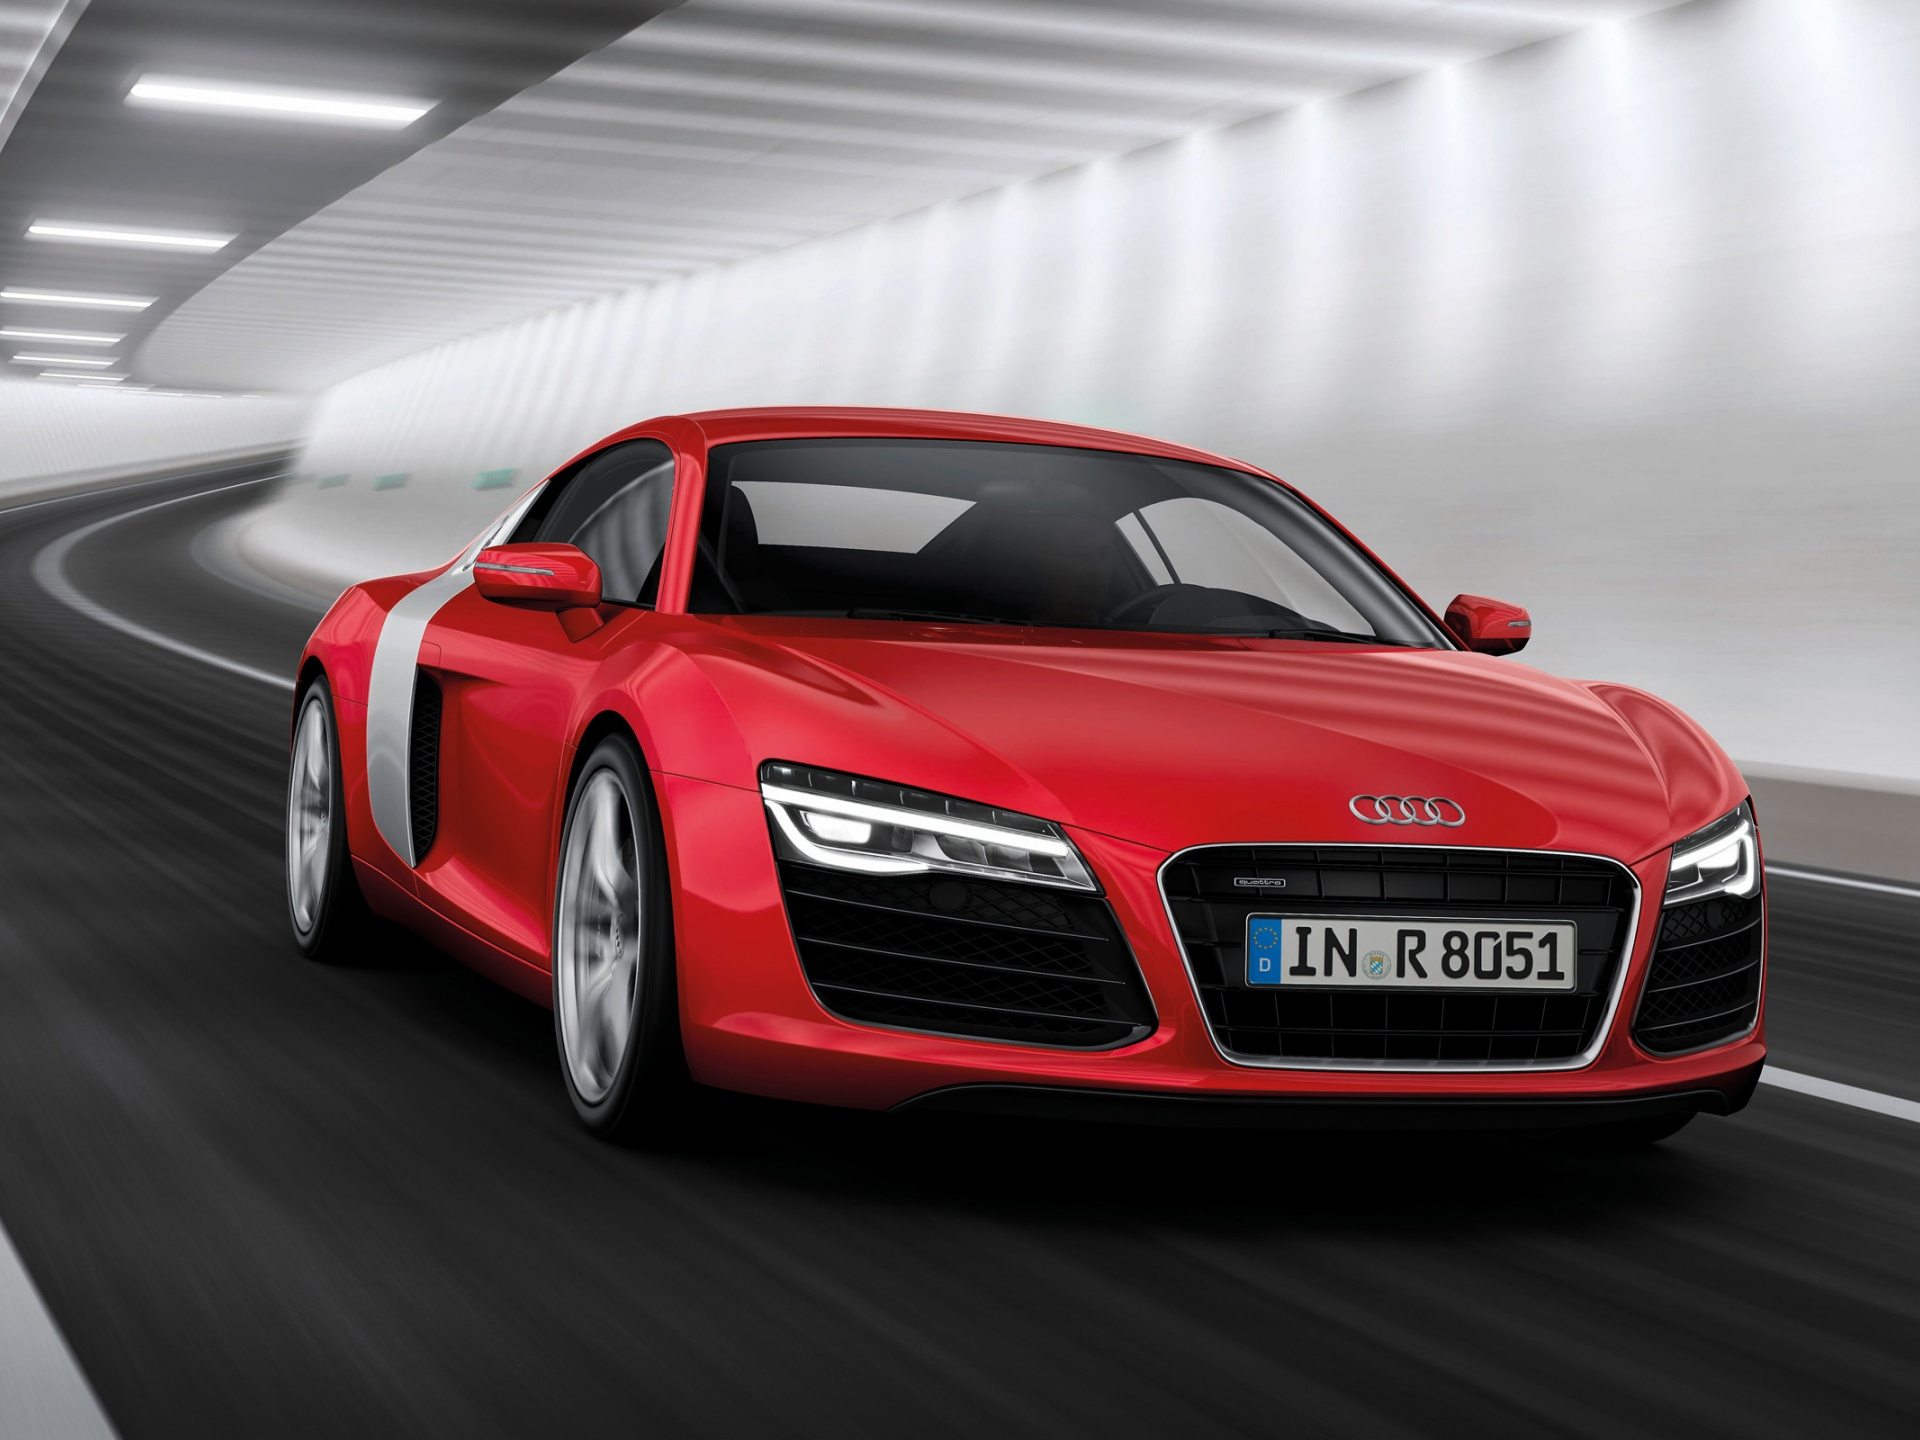 click to free download the wallpaper--Super Cars Image of Audi R8, Red Car Turning a Corner, Never Compromise on Speed 1920X1440 free wallpaper download